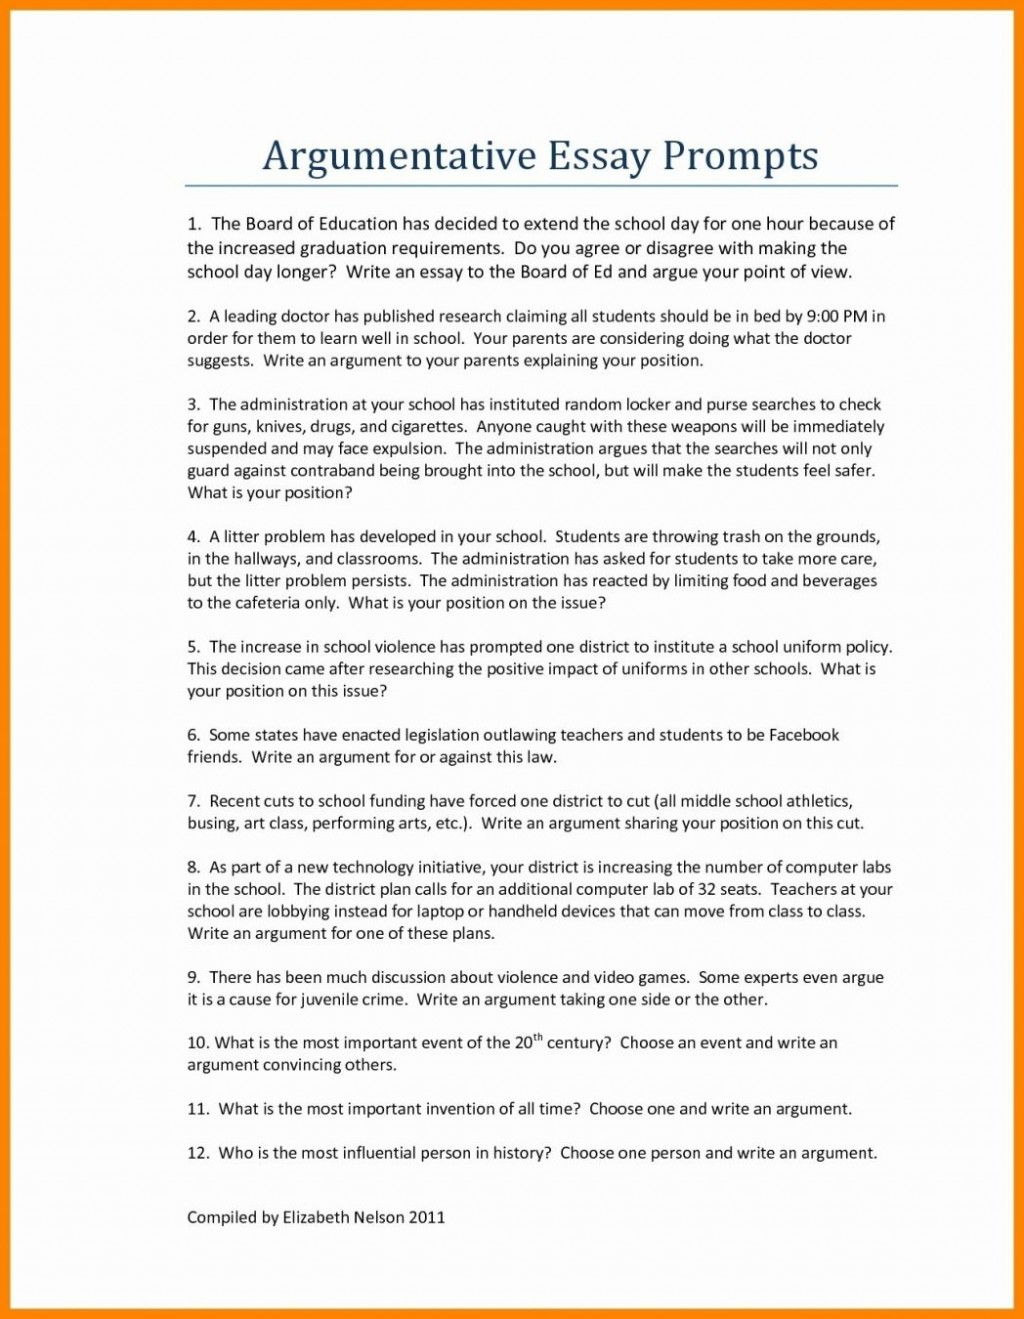 012 Good Persuasive Essay Topics For Middlel As Well Argumentative Hooks Examples Printables Corner College Thesis Conclusion Introduction Pdf 1048x1350 Unique Middle School Easy With Articles Funny Large